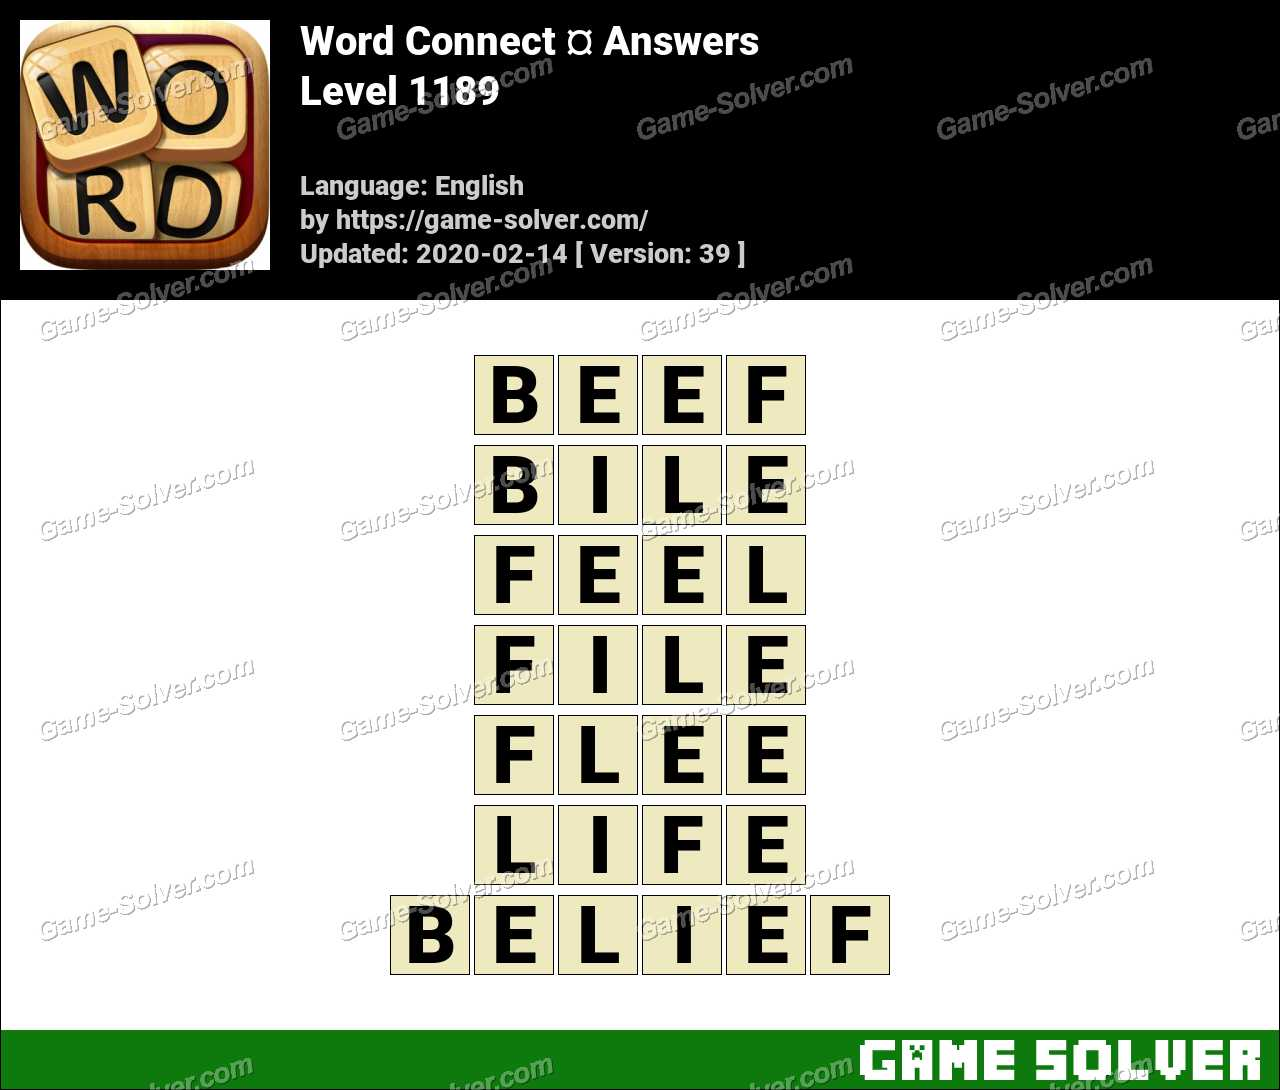 Word Connect Level 1189 Answers